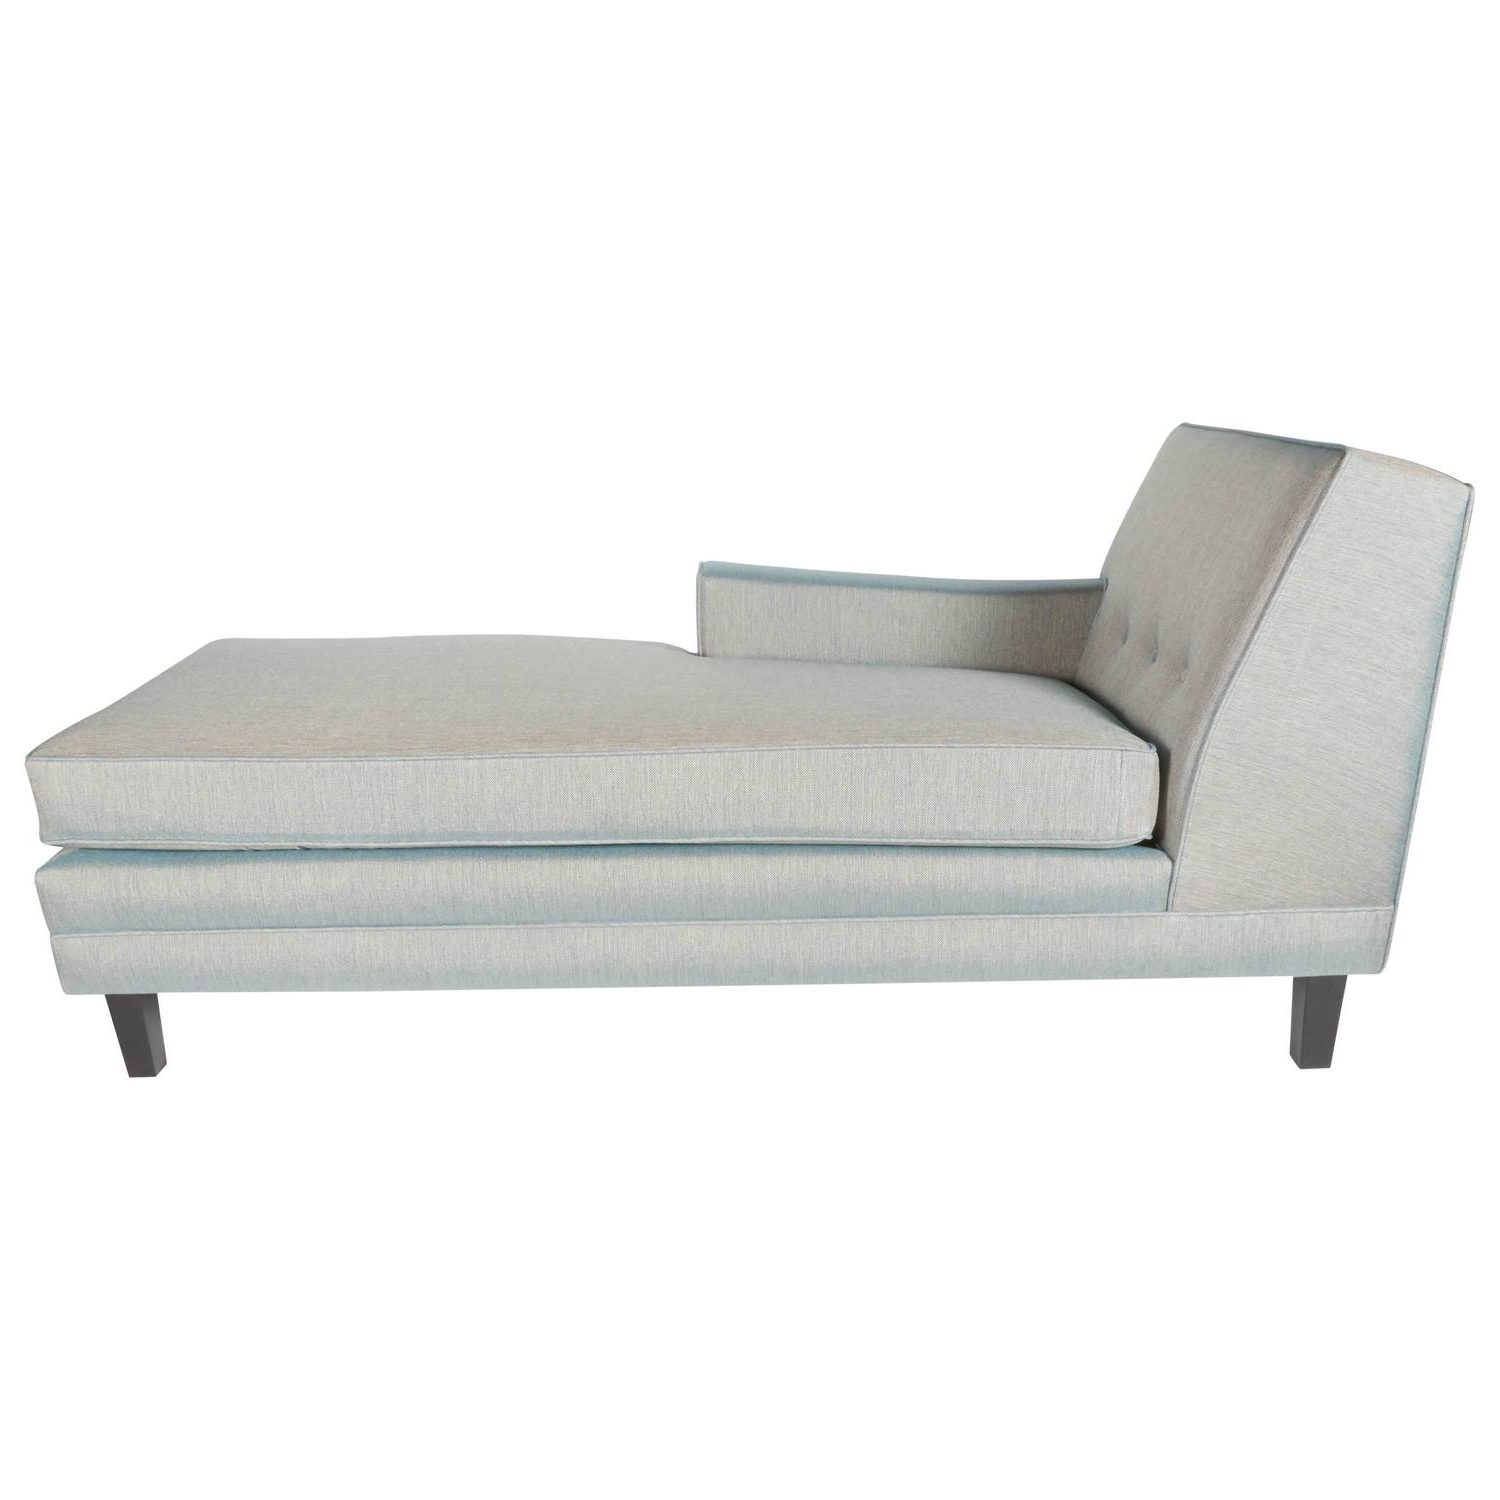 Best Chaise Lounges 15 Best Collection Of Modern Chaise Lounges